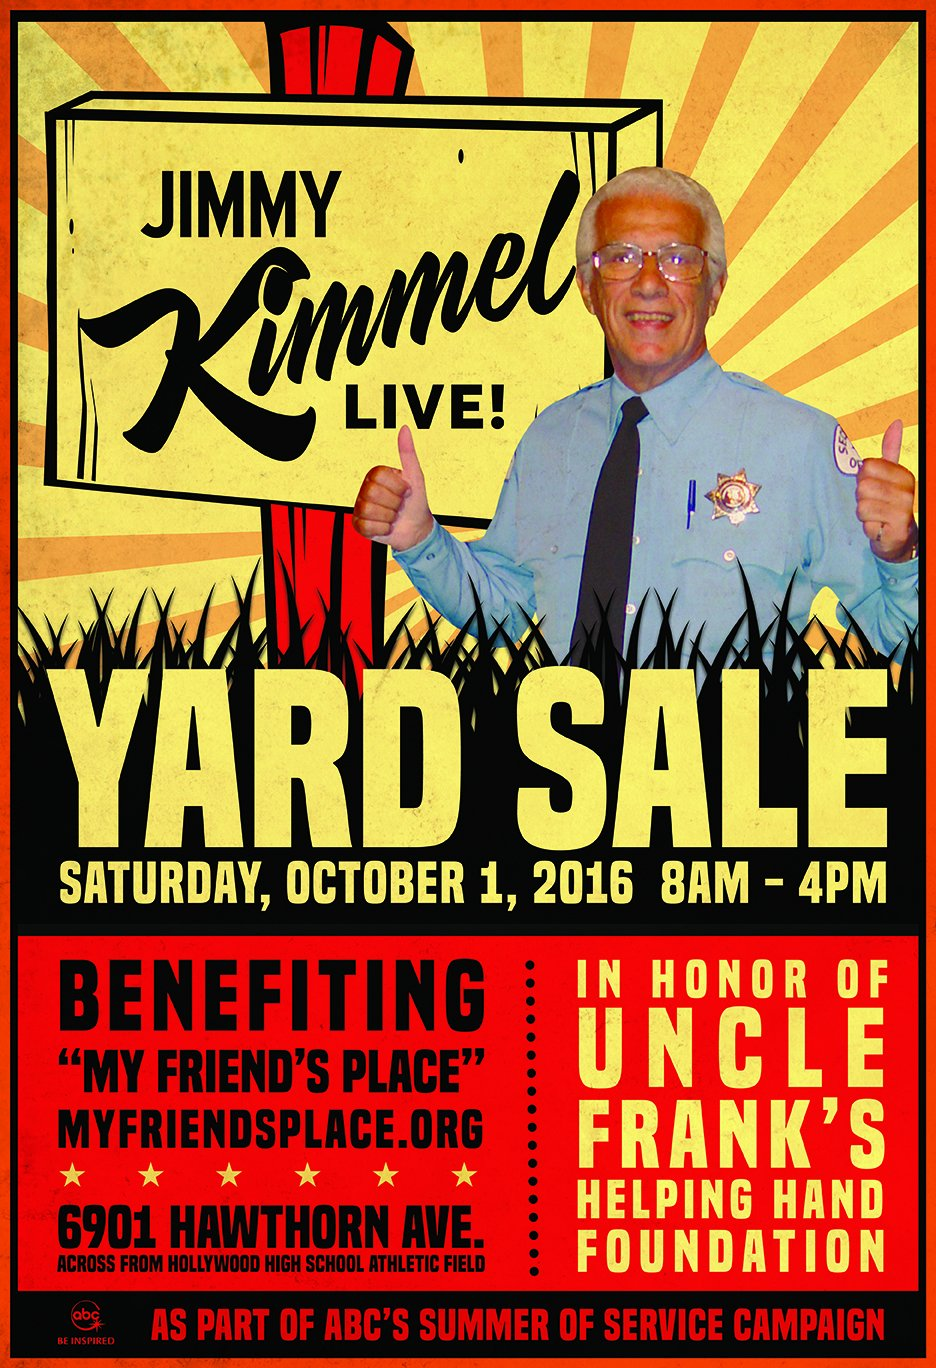 Jimmy Kimmel Live holding a yard sale of TV studio materials to benefit homeless youth